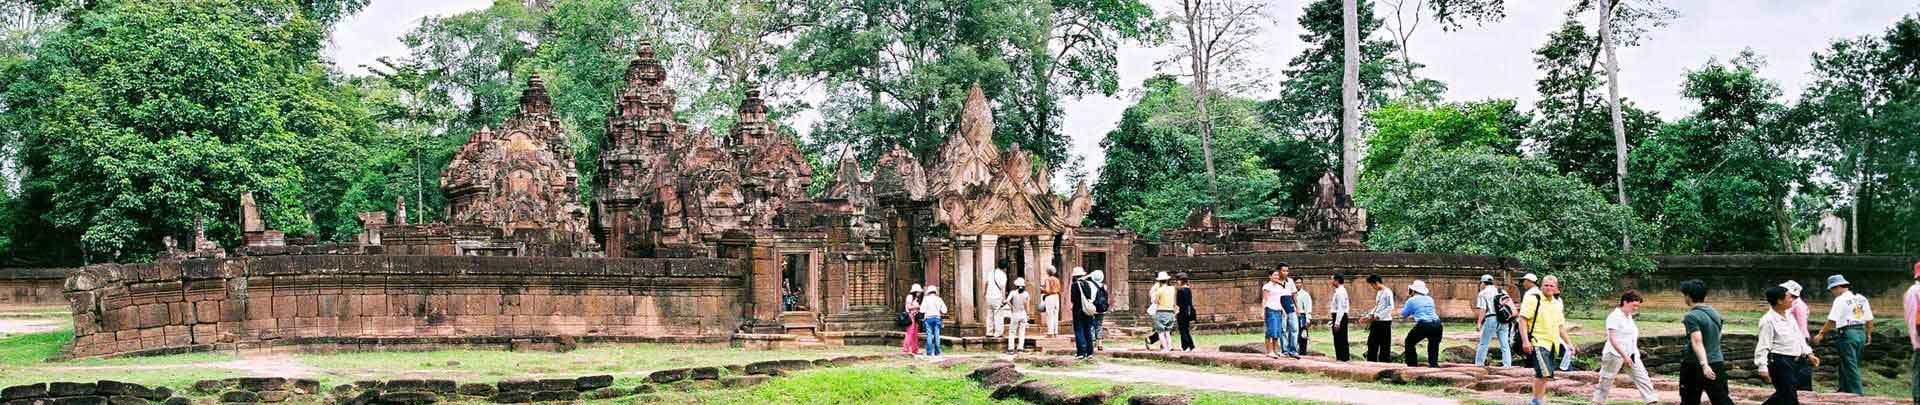 Visit Magical Temple of Angkor Wat